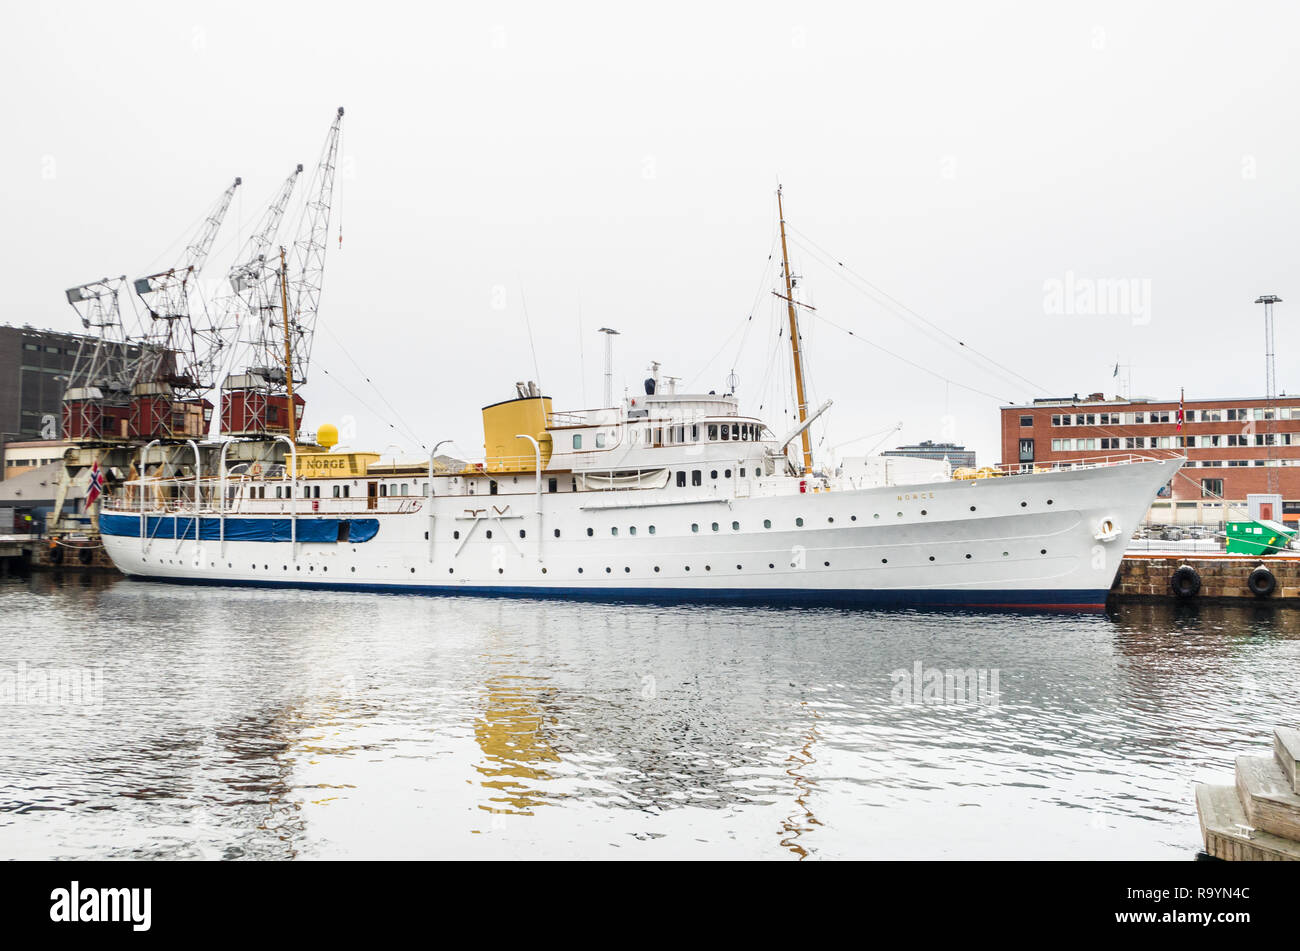 HNoMY Norge- the Royal Yacht of the King of Norway- at her home port of Oslo, in winter seasonal break. - Stock Image